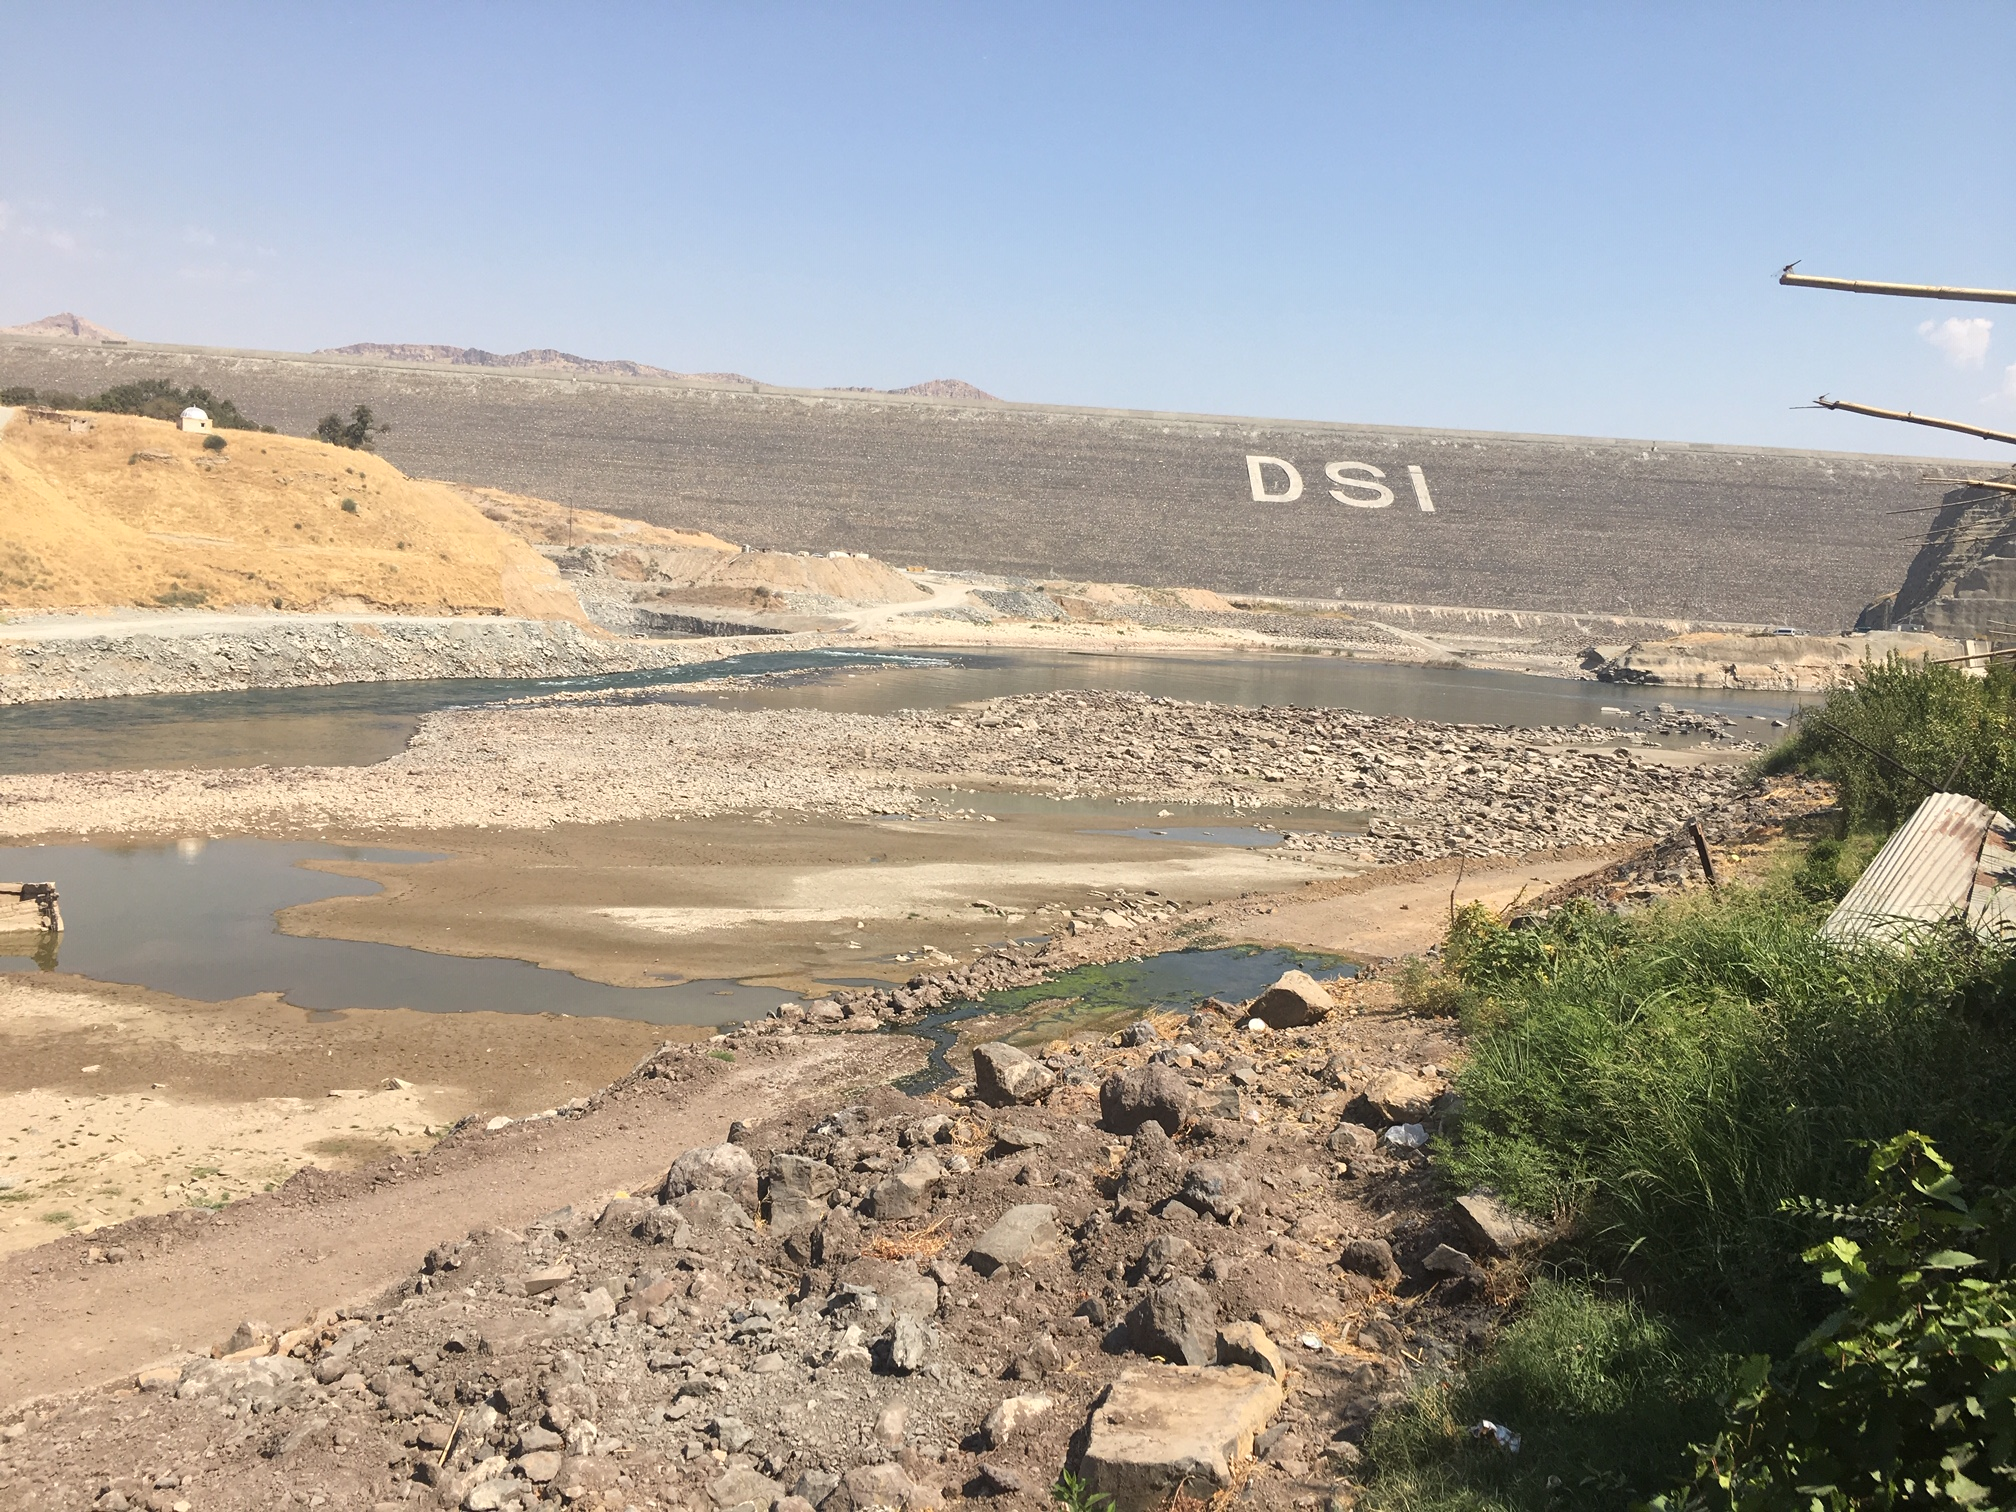 On the other side of the Ilisu dam wall, only a trickle is left of the mighty Tigris © Riverwatch